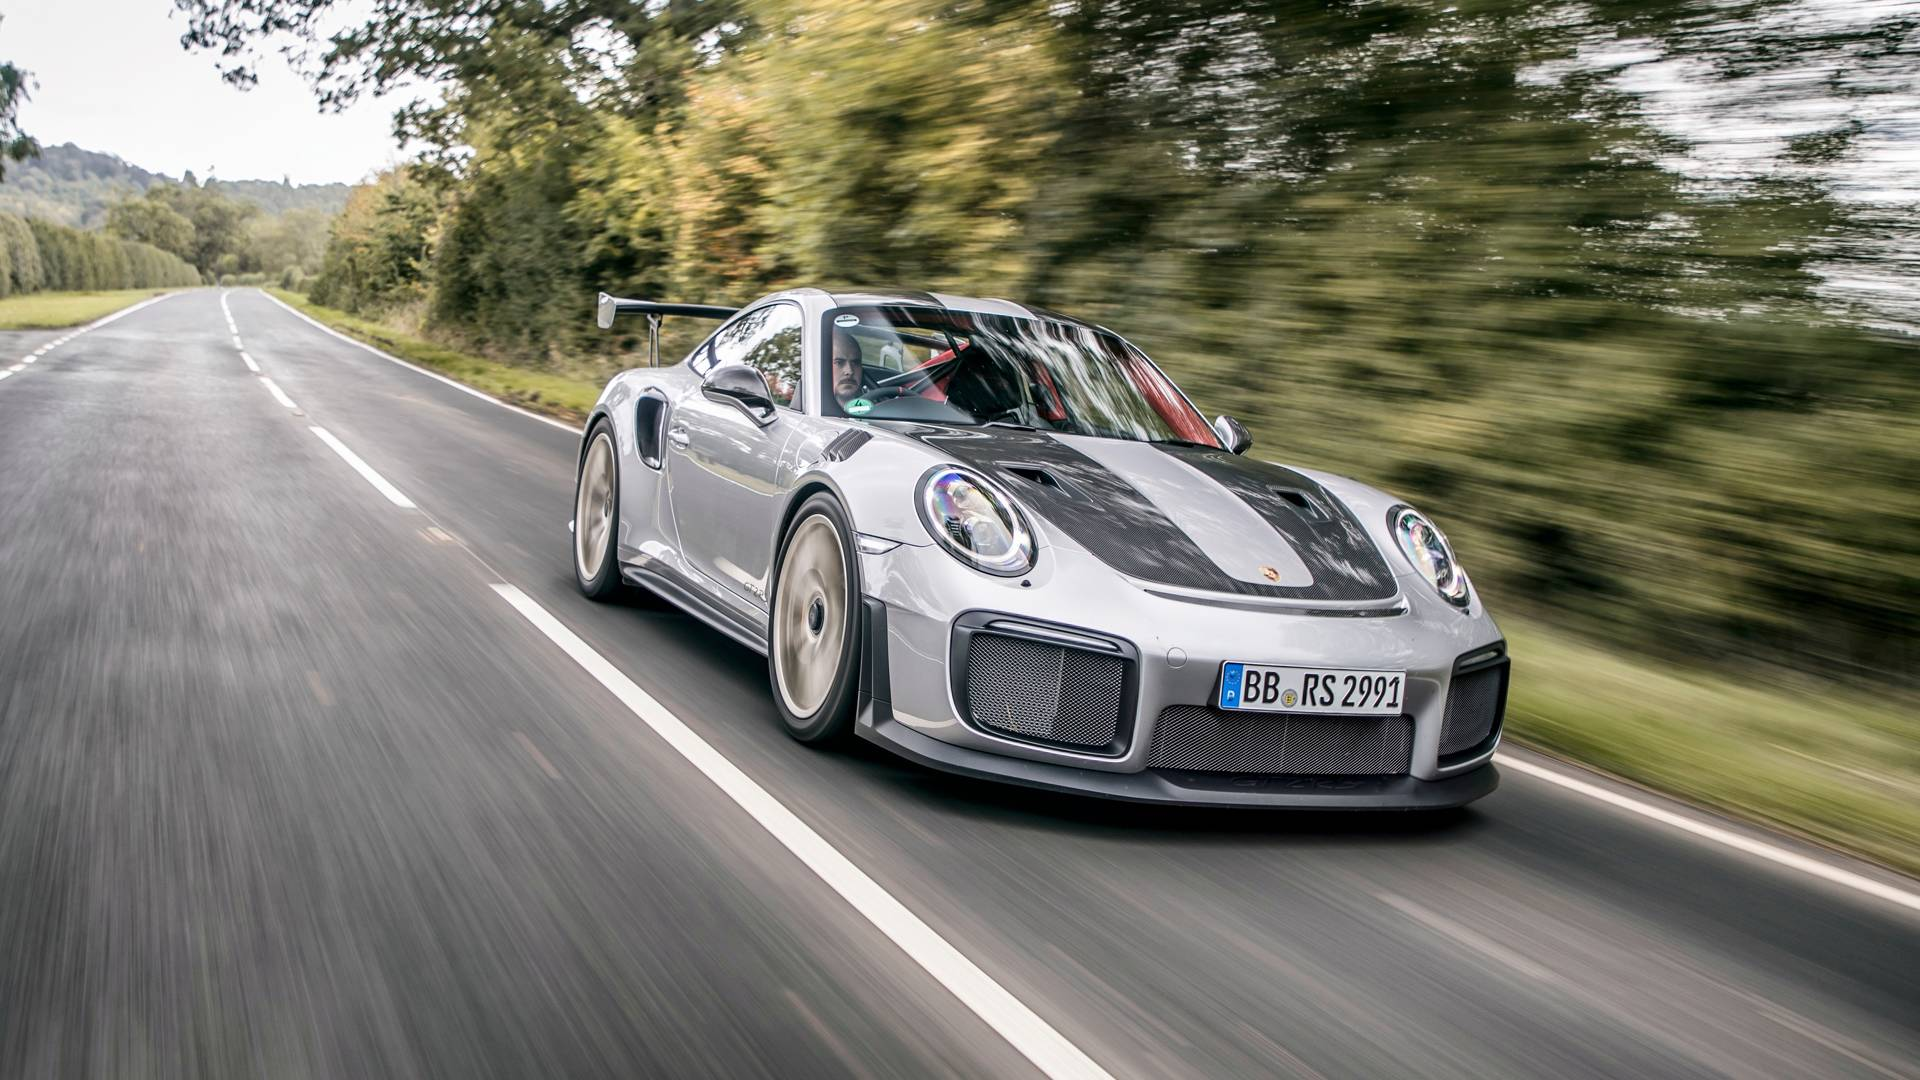 Porsche Gt2 Rs Wallpapers Wallpaper Cave